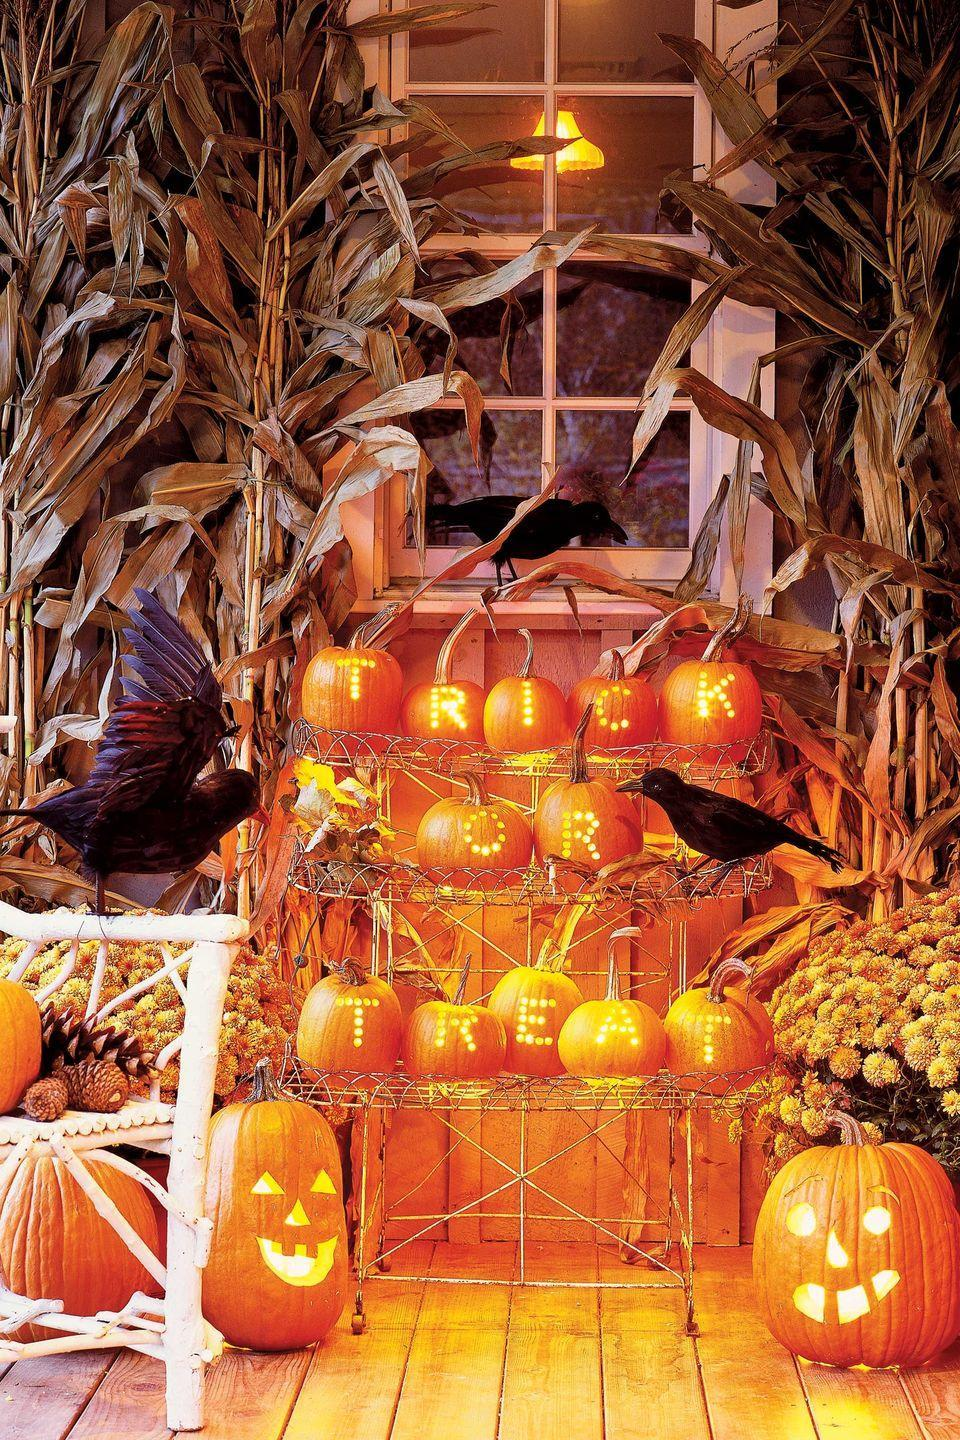 """<p class=""""imageContent"""">Spell out your greeting in mini pumpkins gathered on your porch.</p><p><strong>Step 1:</strong> Pencil letters on hollowed pumpkins (carve out the opening from the bottom).</p><p><strong>Step 2:</strong> Using a drill with a half-inch bit, bore holes to form each letter.</p><p><strong>Step 3:</strong> Hang strings of Christmas-tree lights, gathered in small bunches, to illuminate each pumpkin (unscrew bulbs where the string descends to the next row). </p>"""